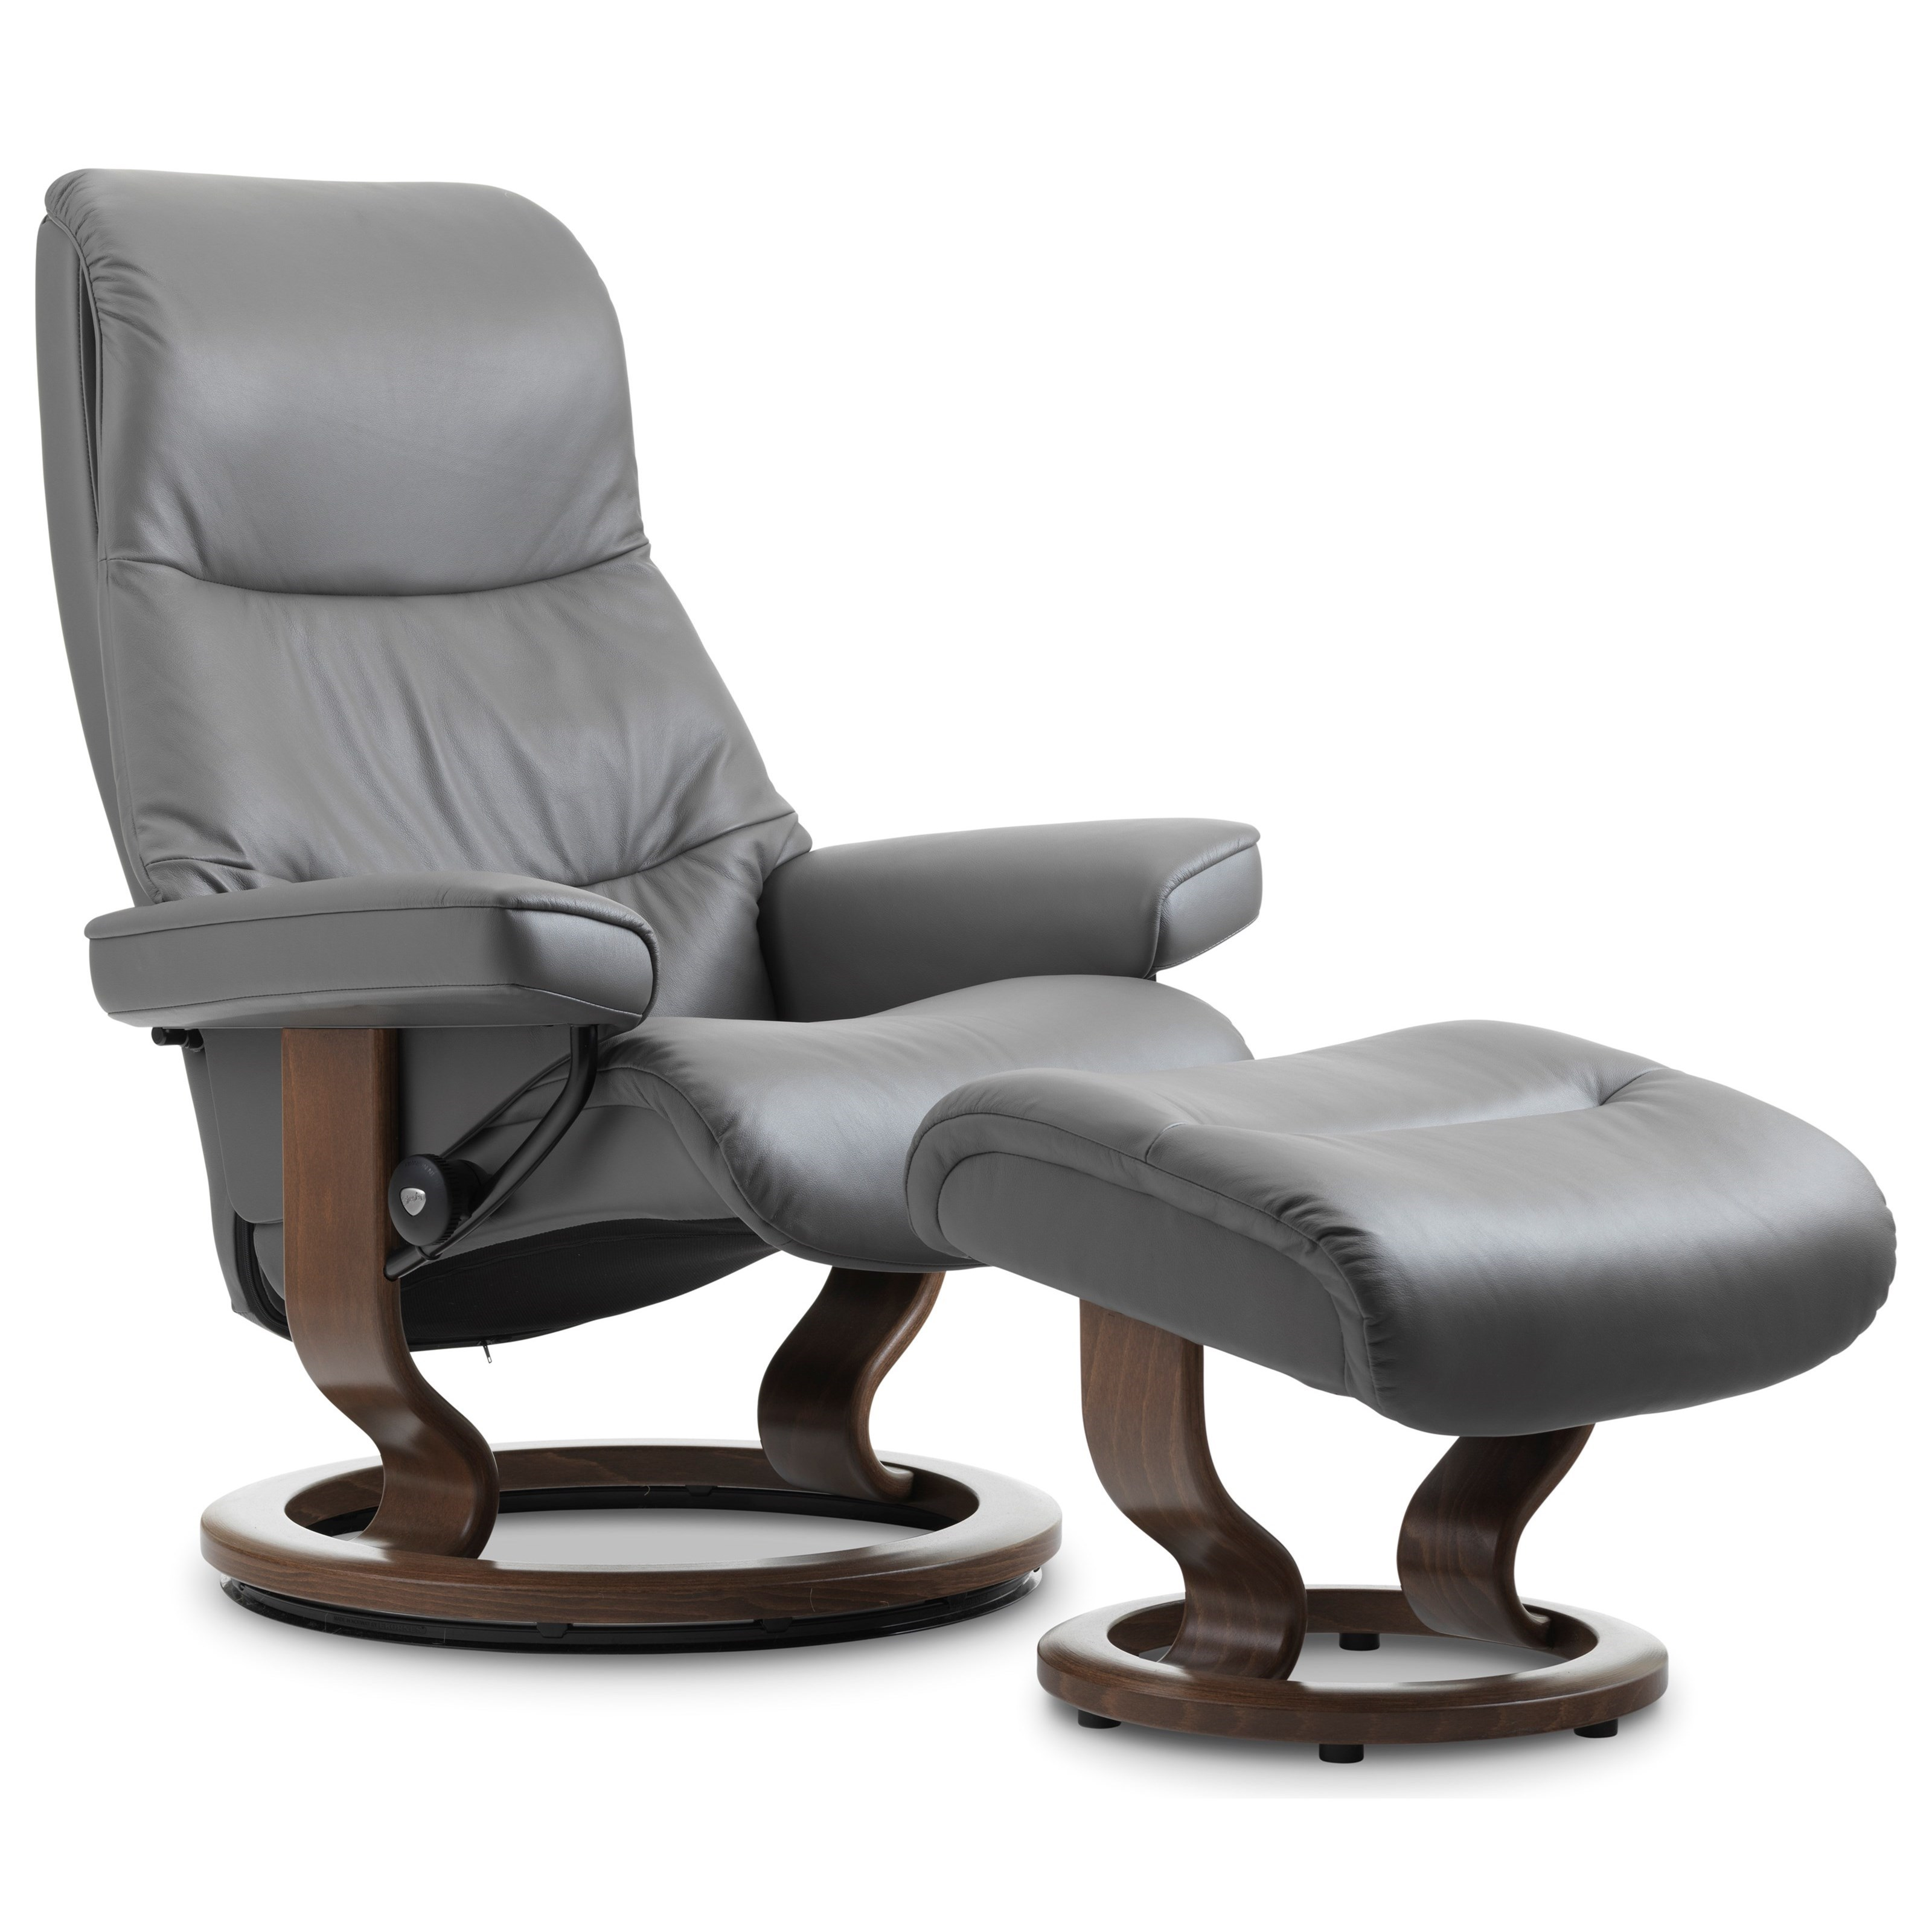 View Medium Chair & Ottoman with Classic Base by Stressless at Jordan's Home Furnishings